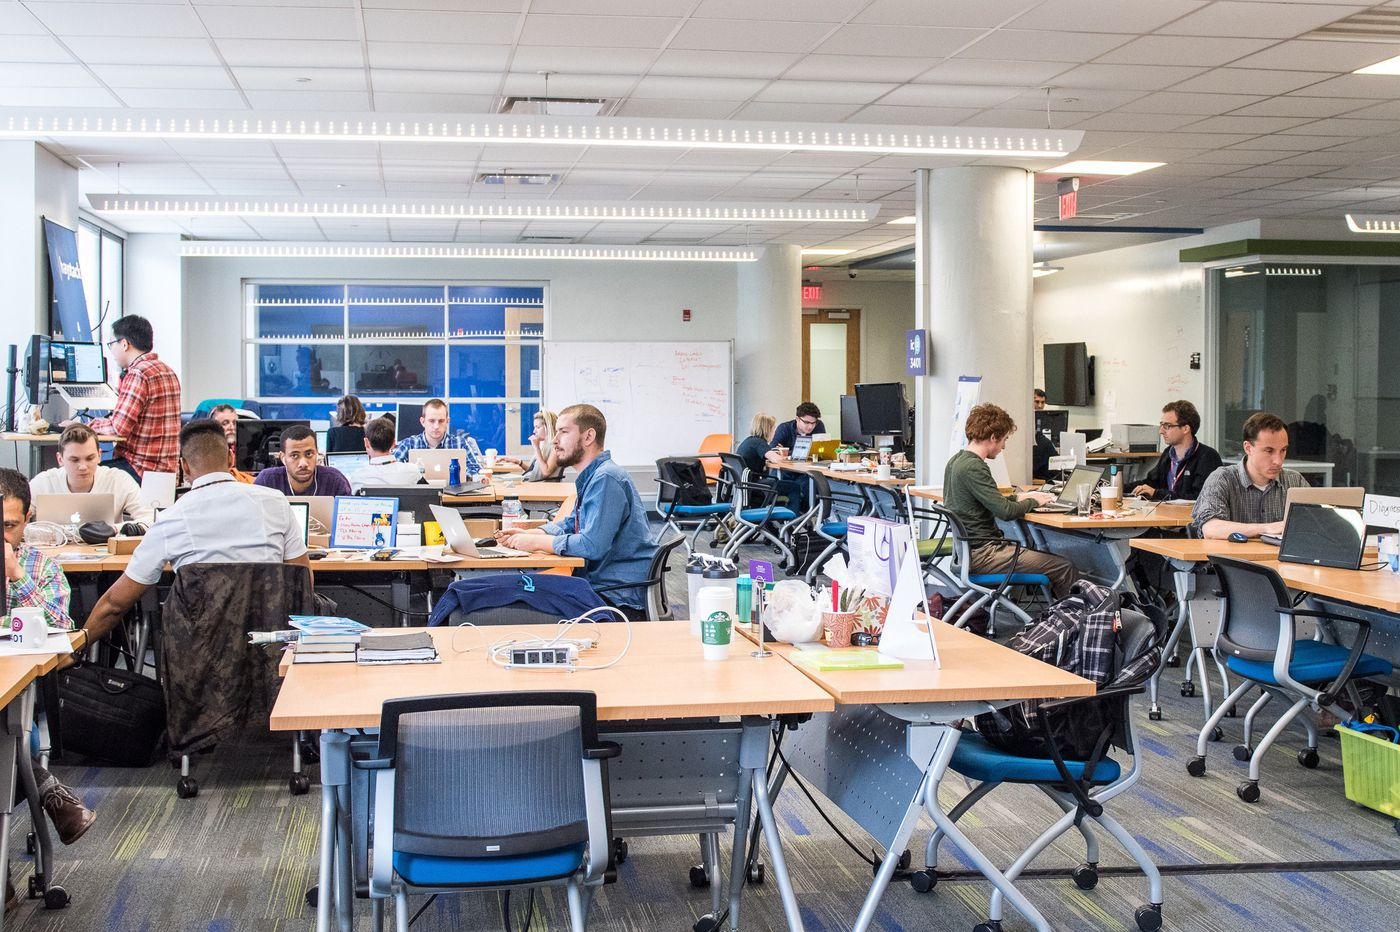 This free, Philly-based start-up accelerator program is accepting candidates now